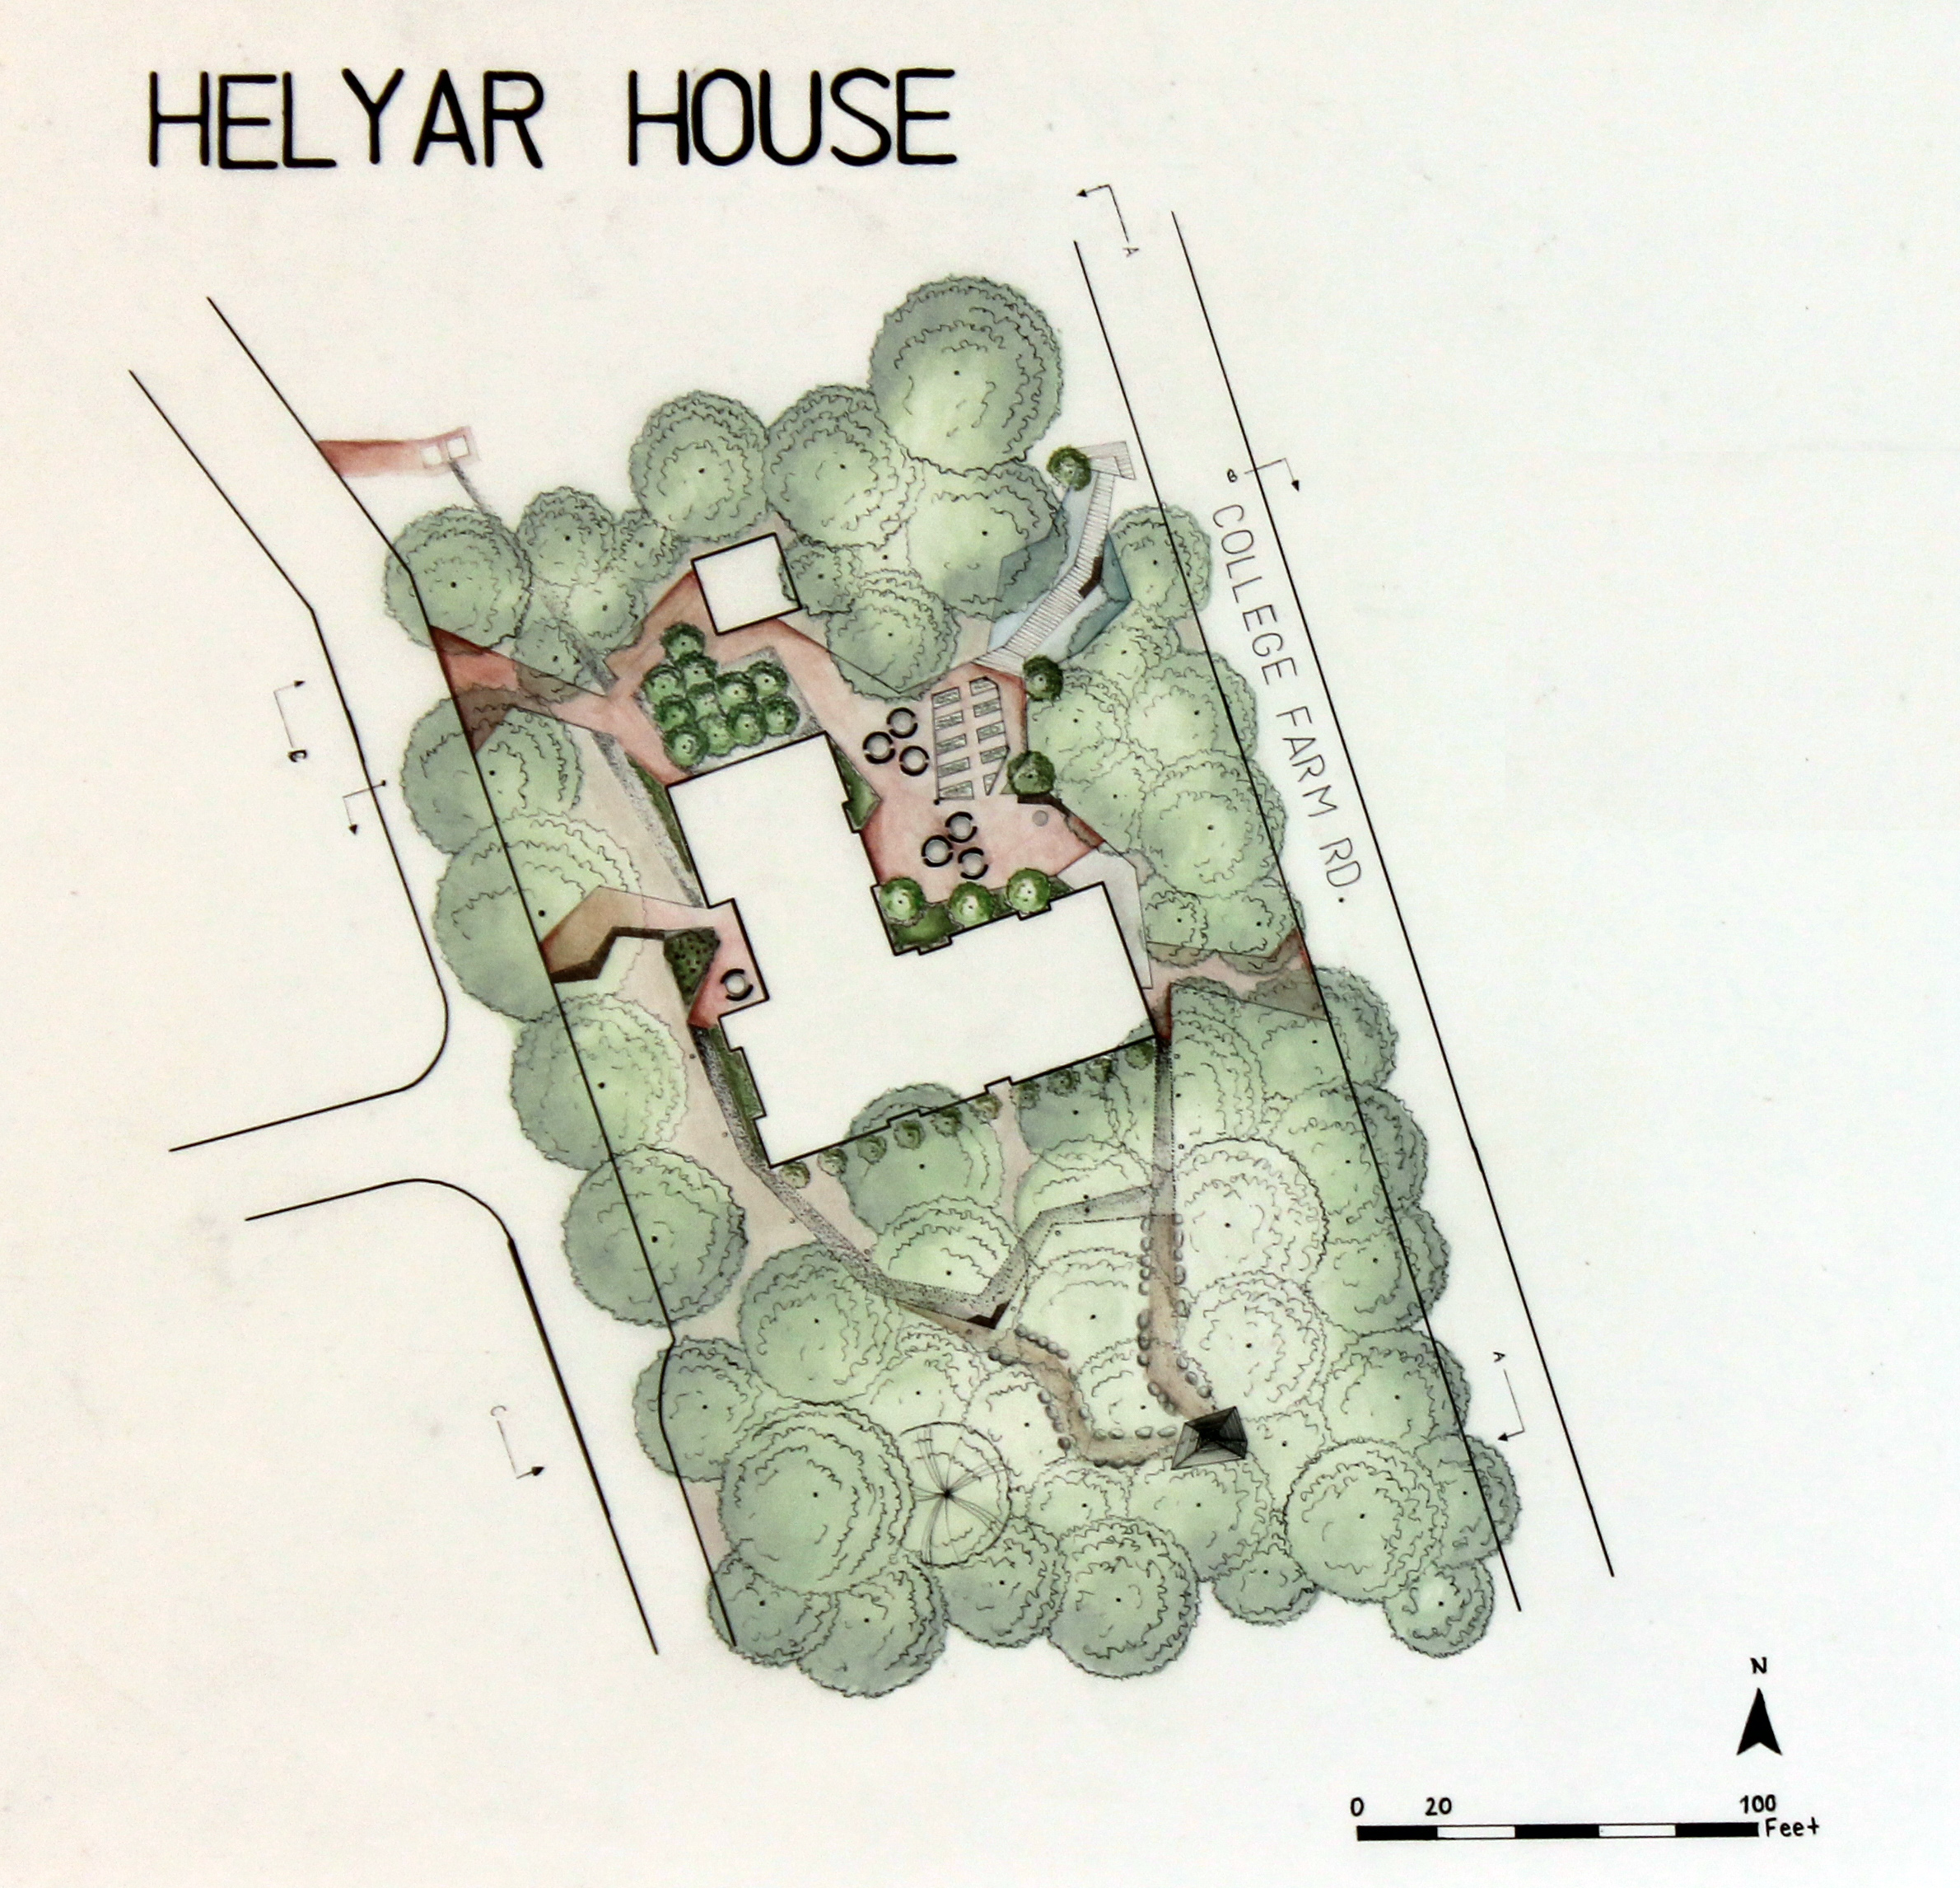 landscape architecture students propose designs for helyar house